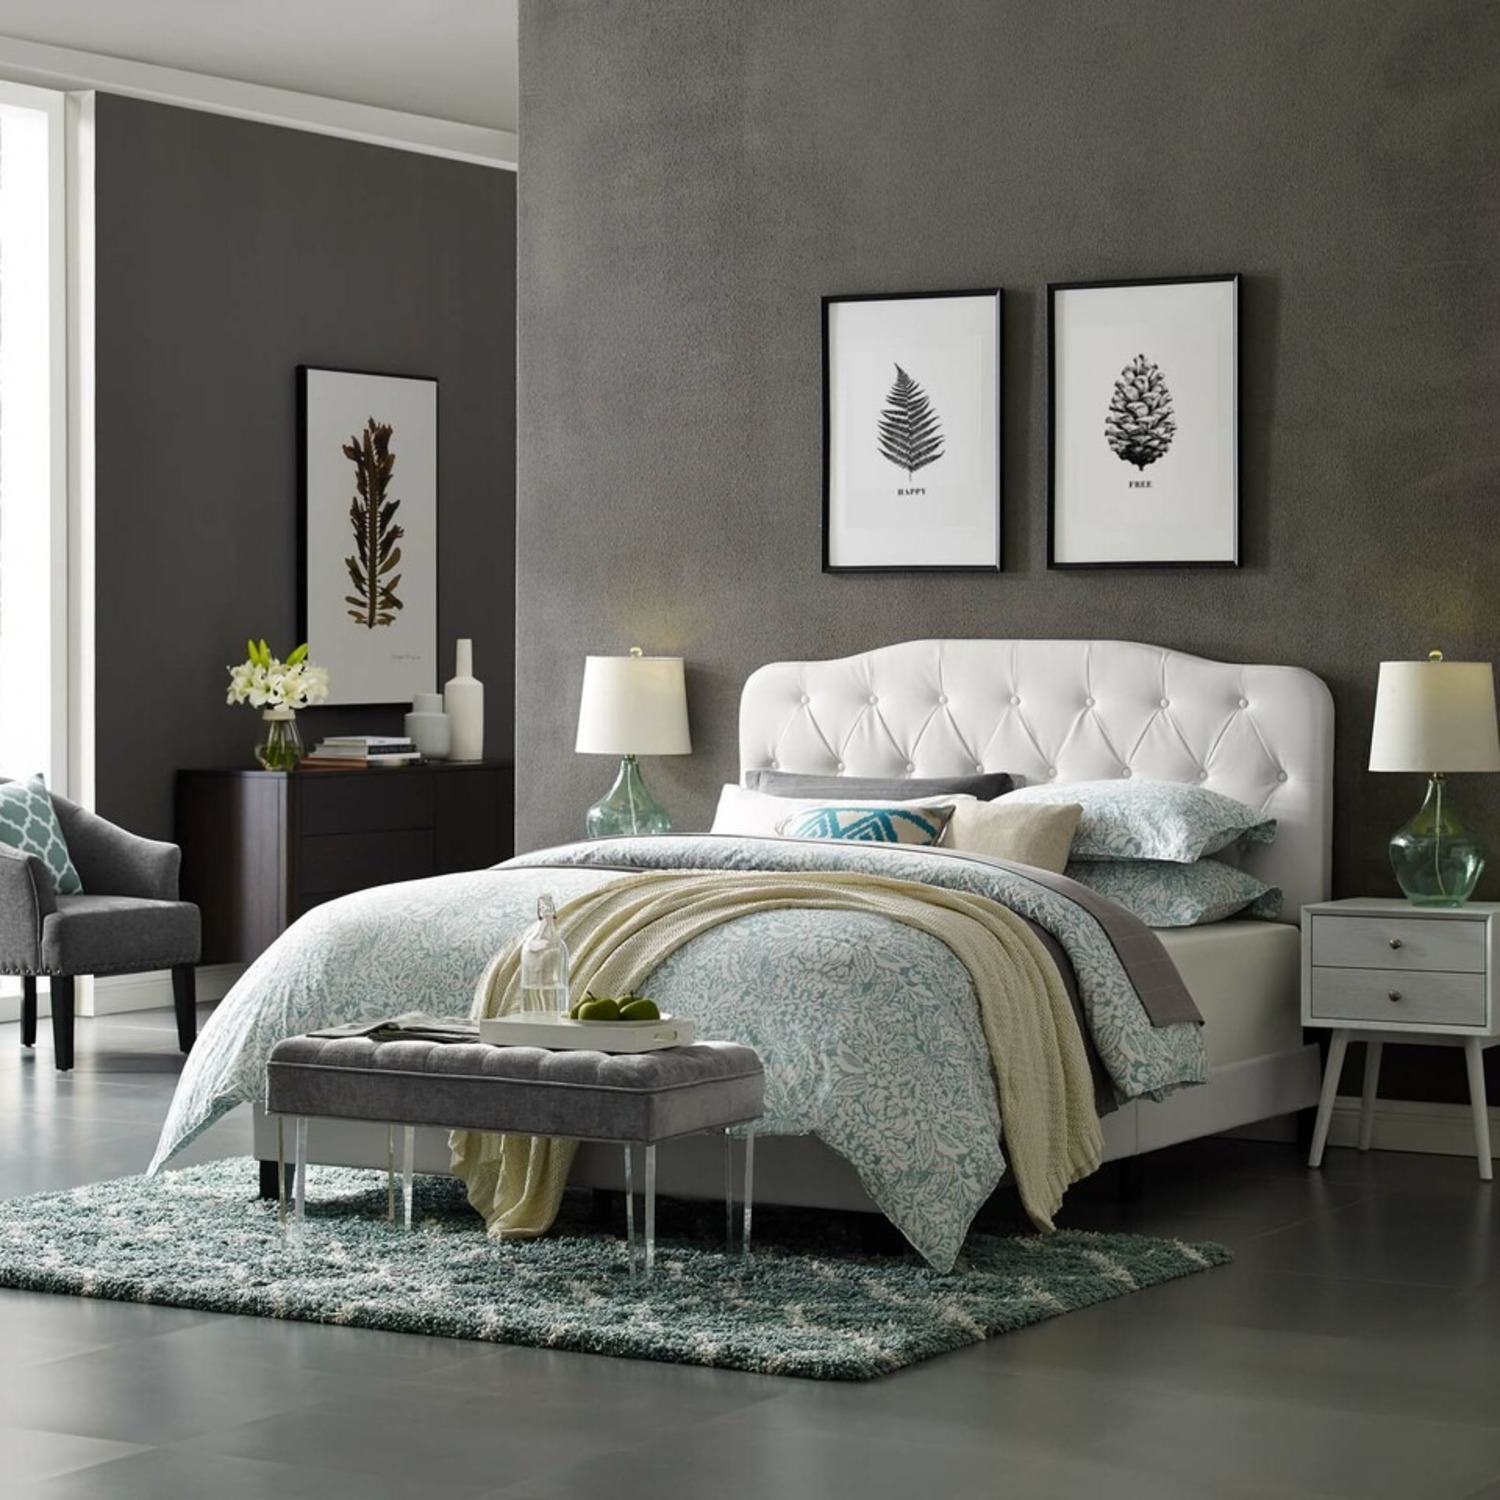 Full Bed In White Button-Tufted Faux Leather - image-4